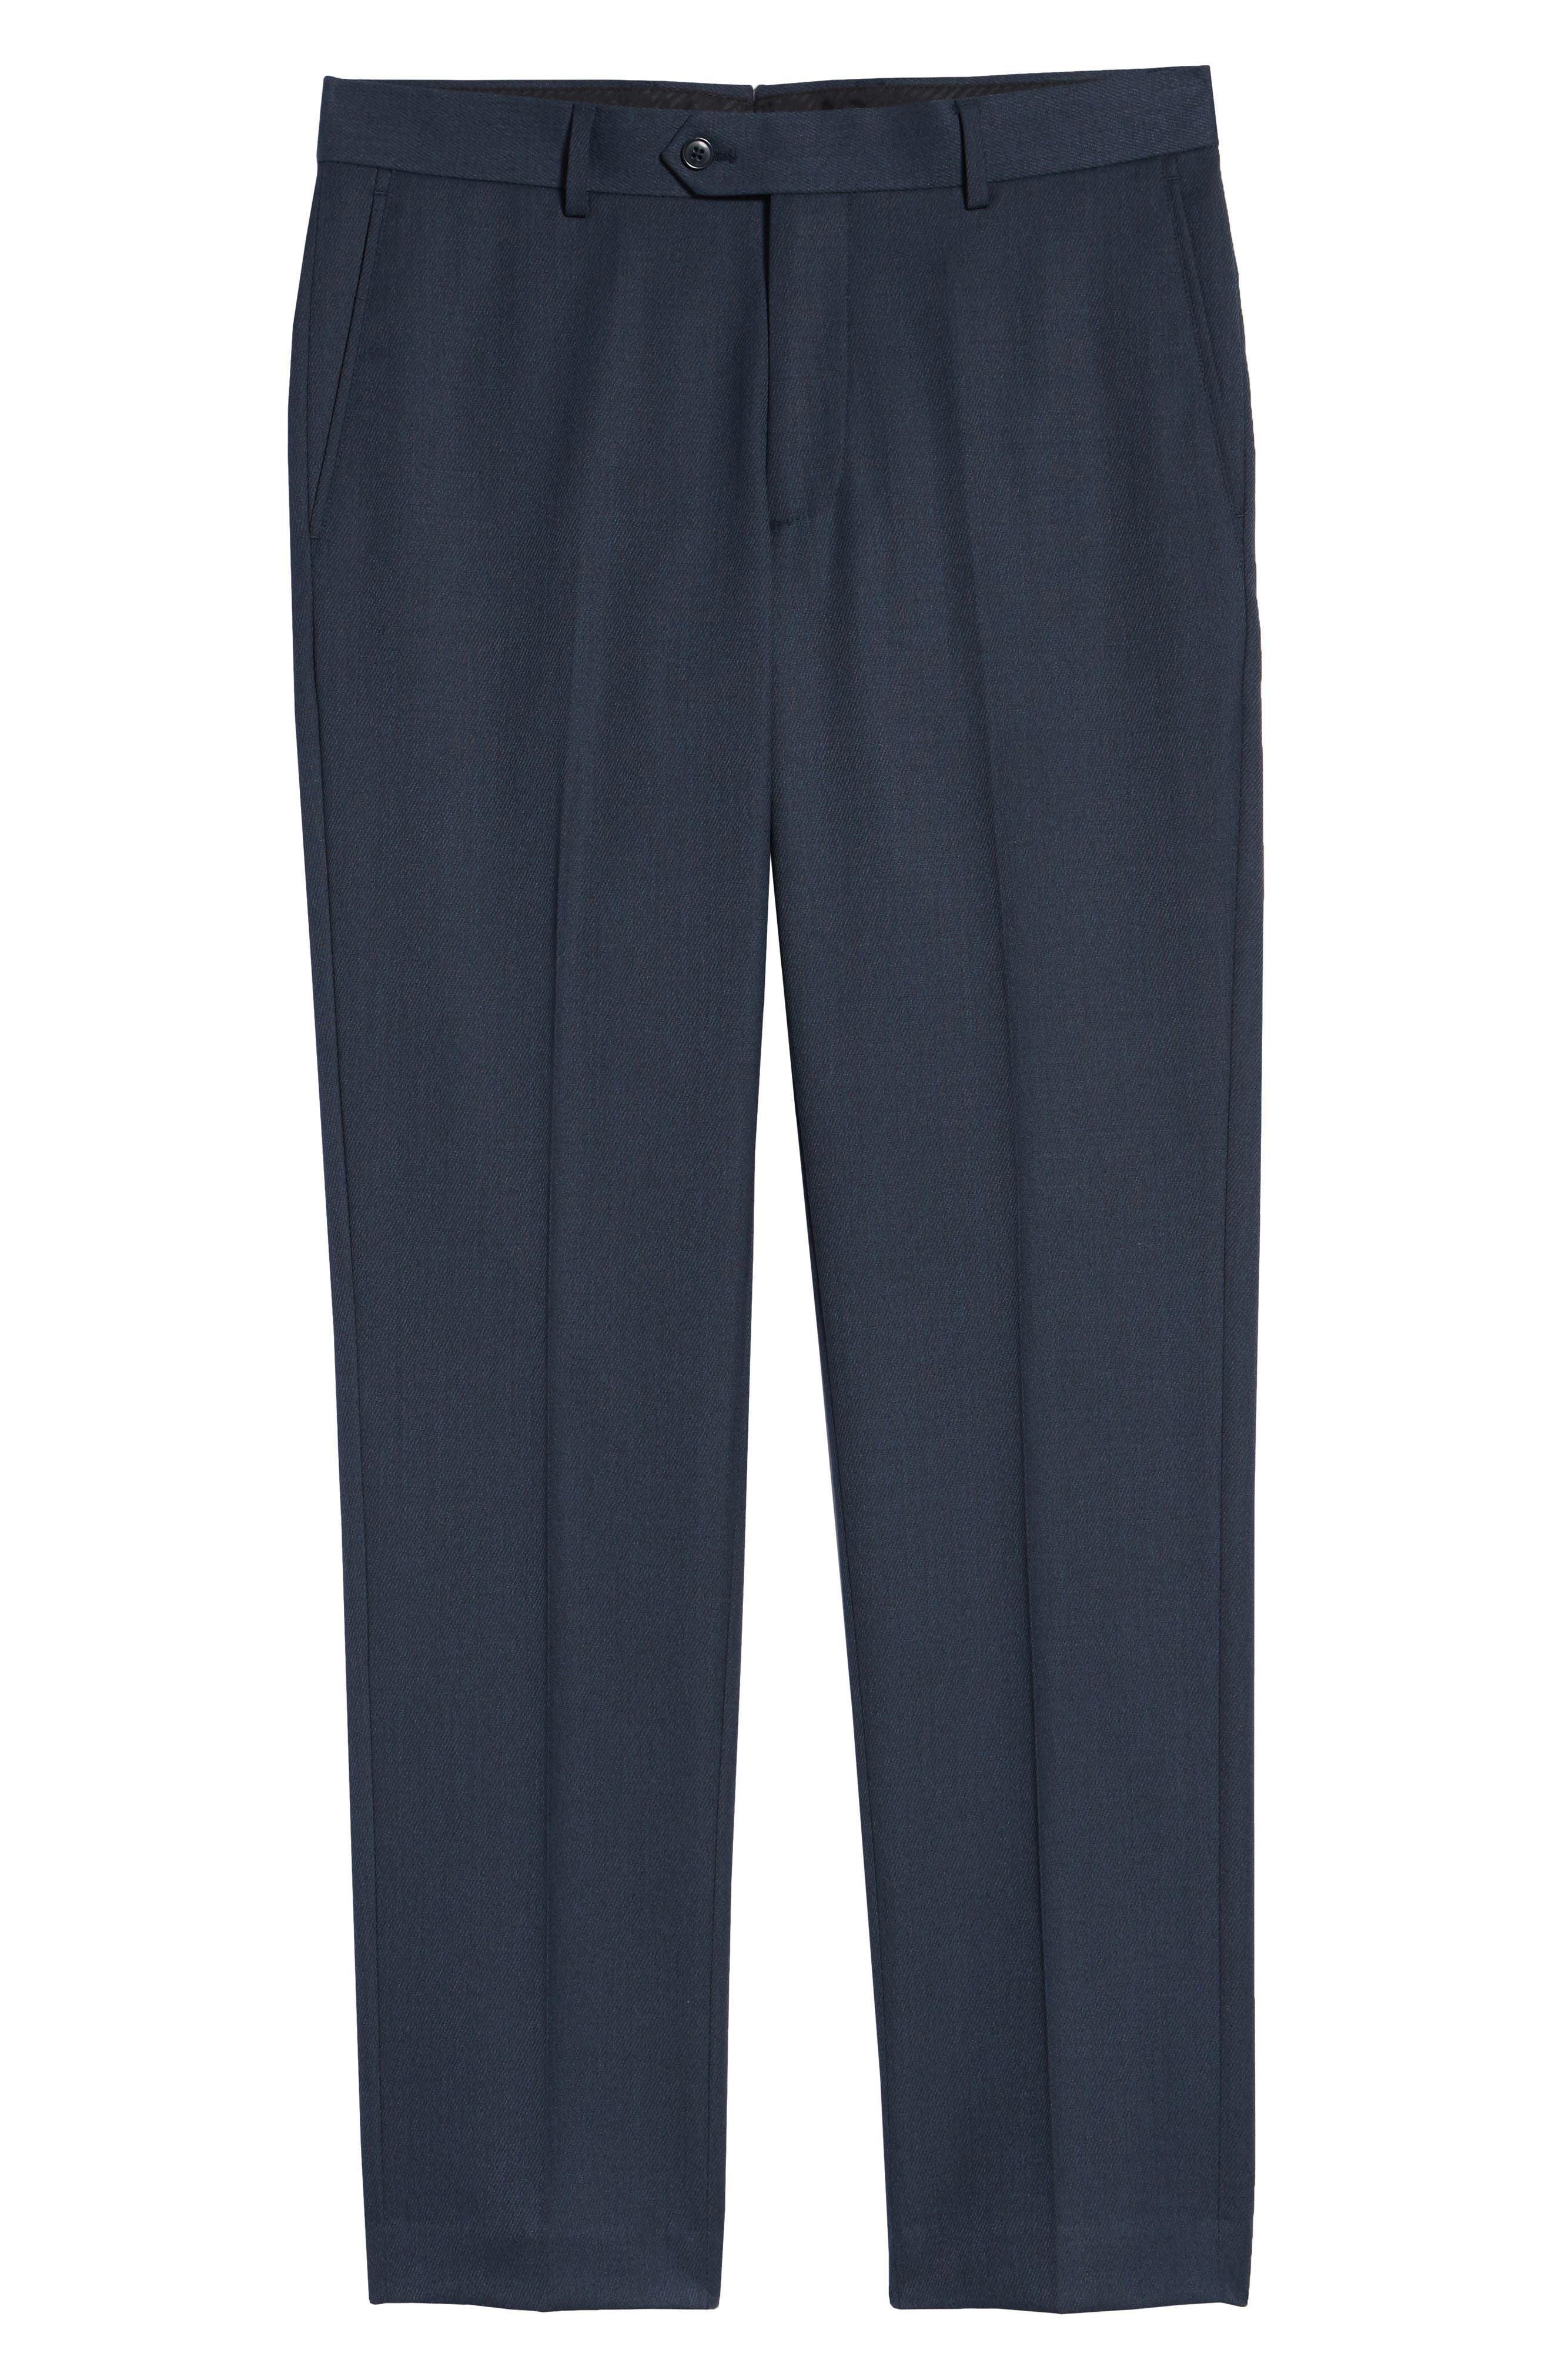 Gains Flat Front Solid Wool Trousers,                             Alternate thumbnail 6, color,                             DARK BLUE